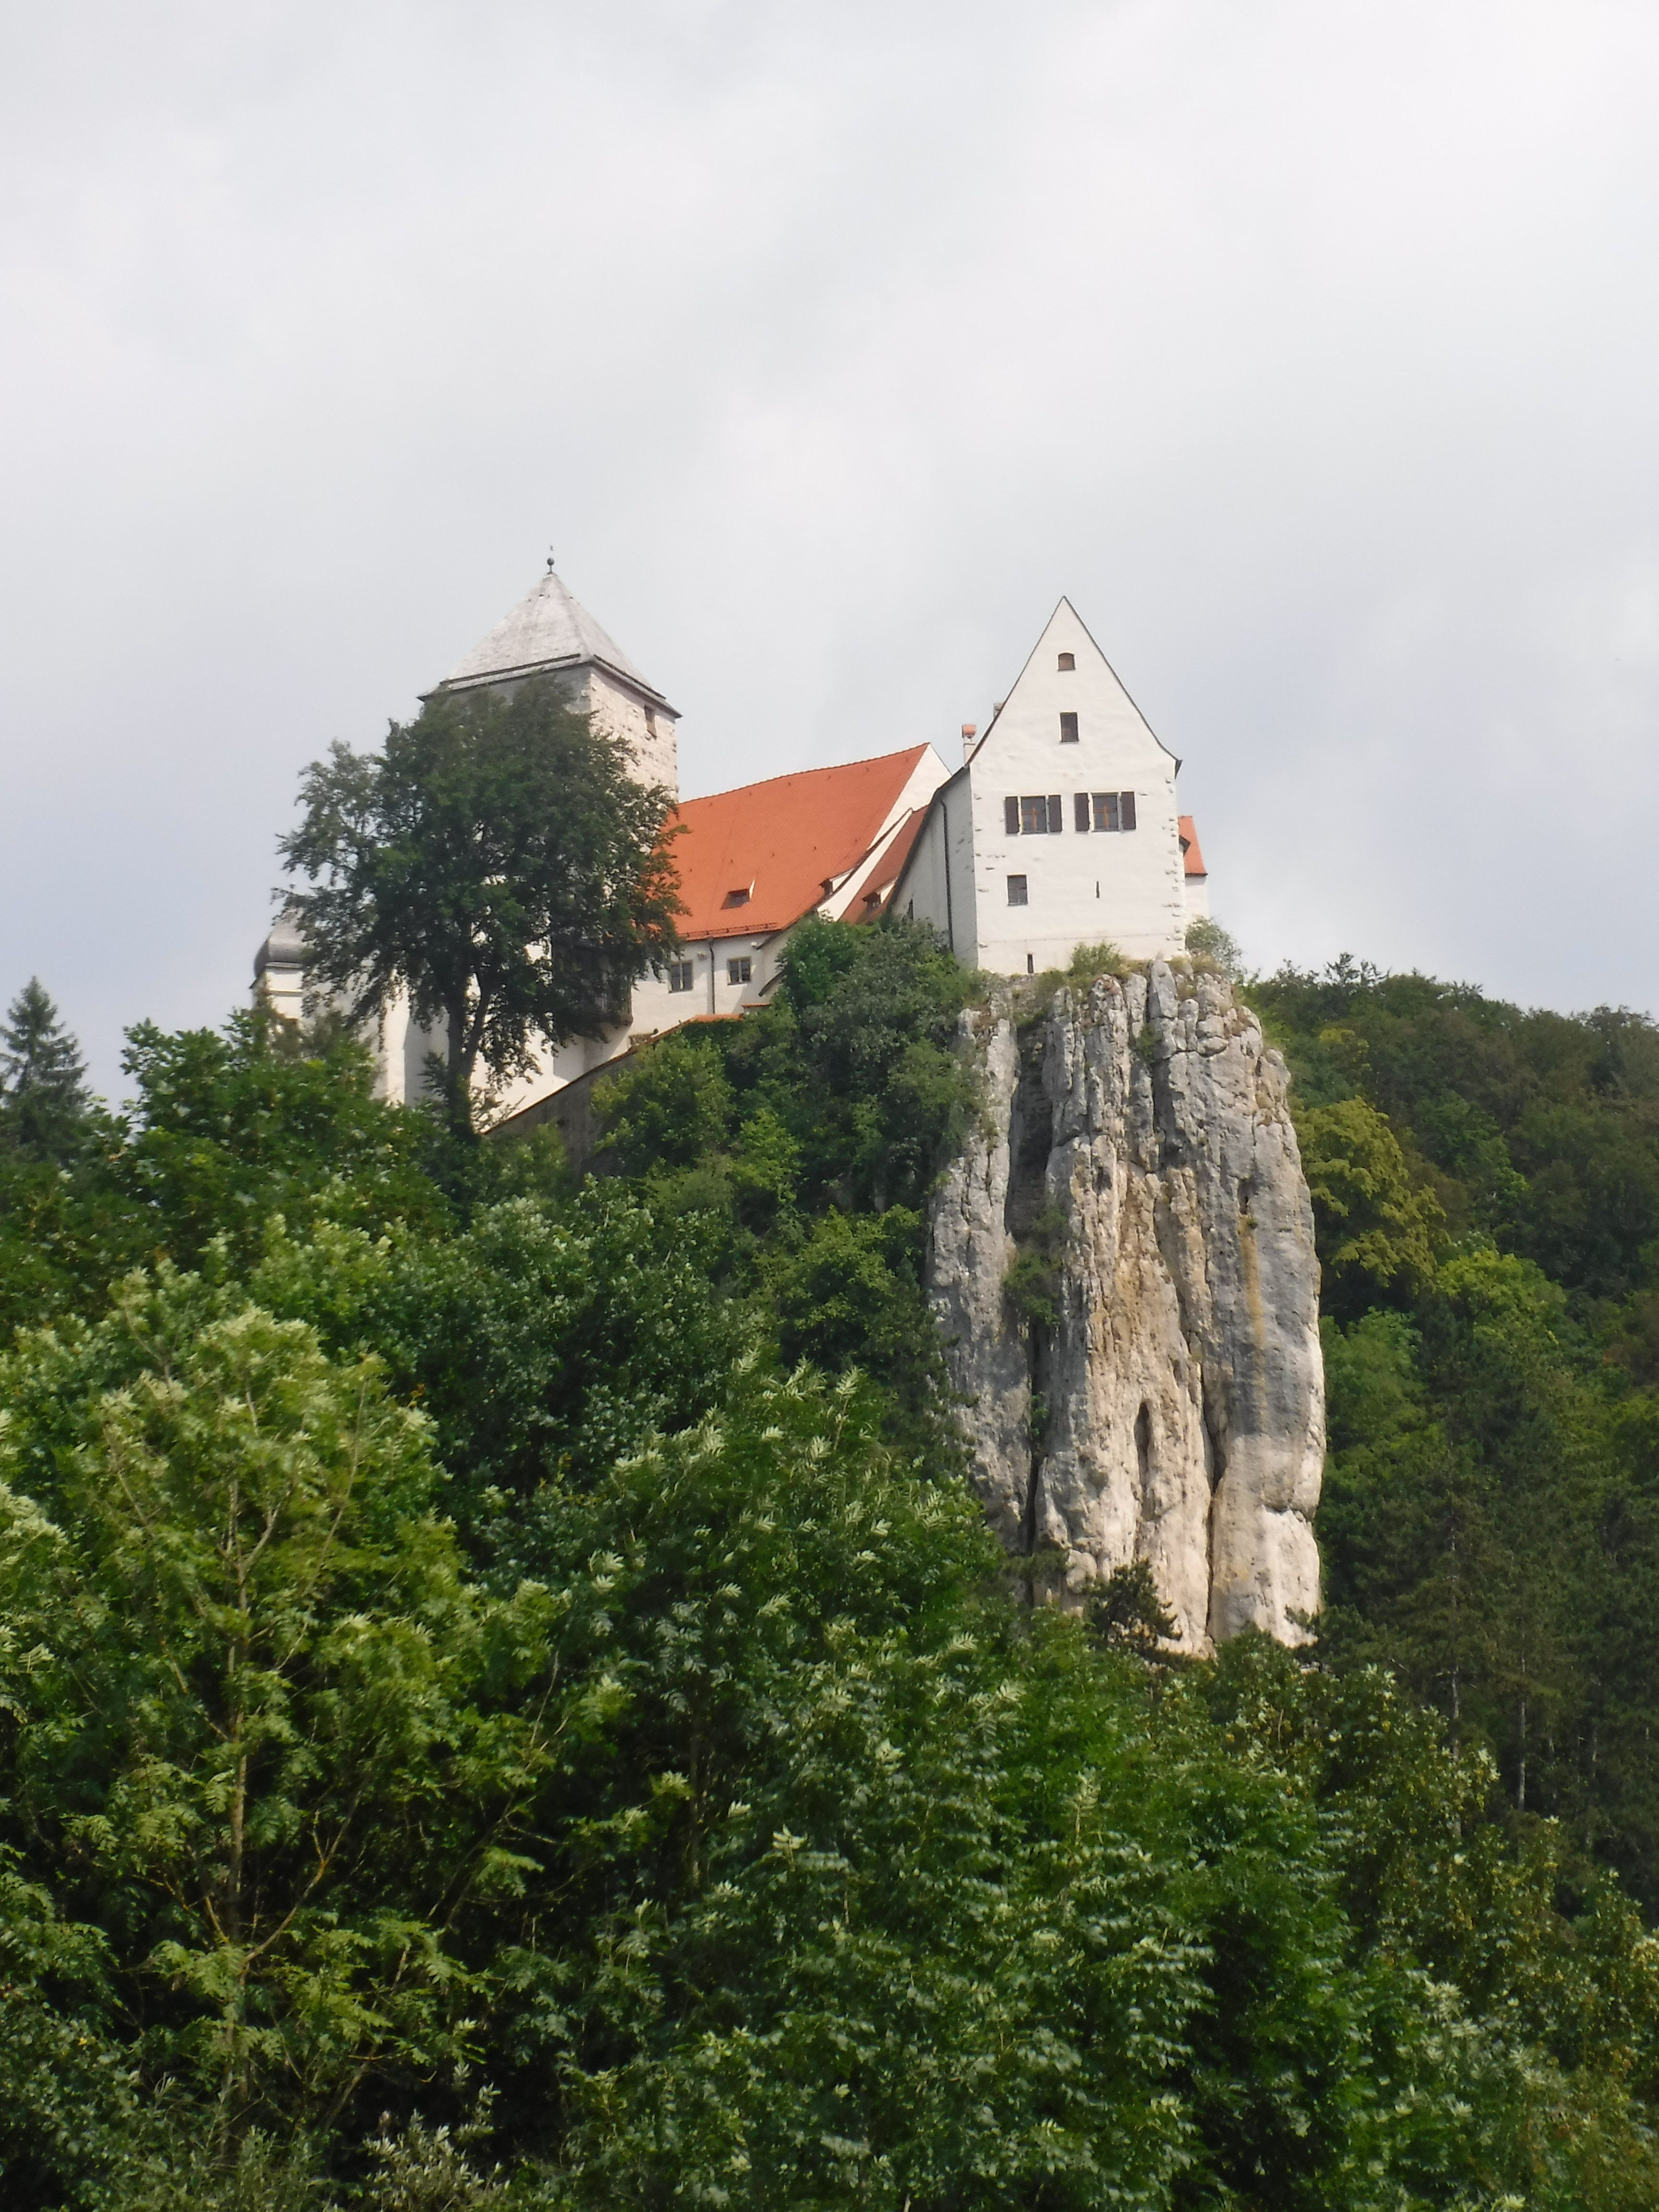 Headwater - Bavarian Castles And Rivers Self-guided Cycling